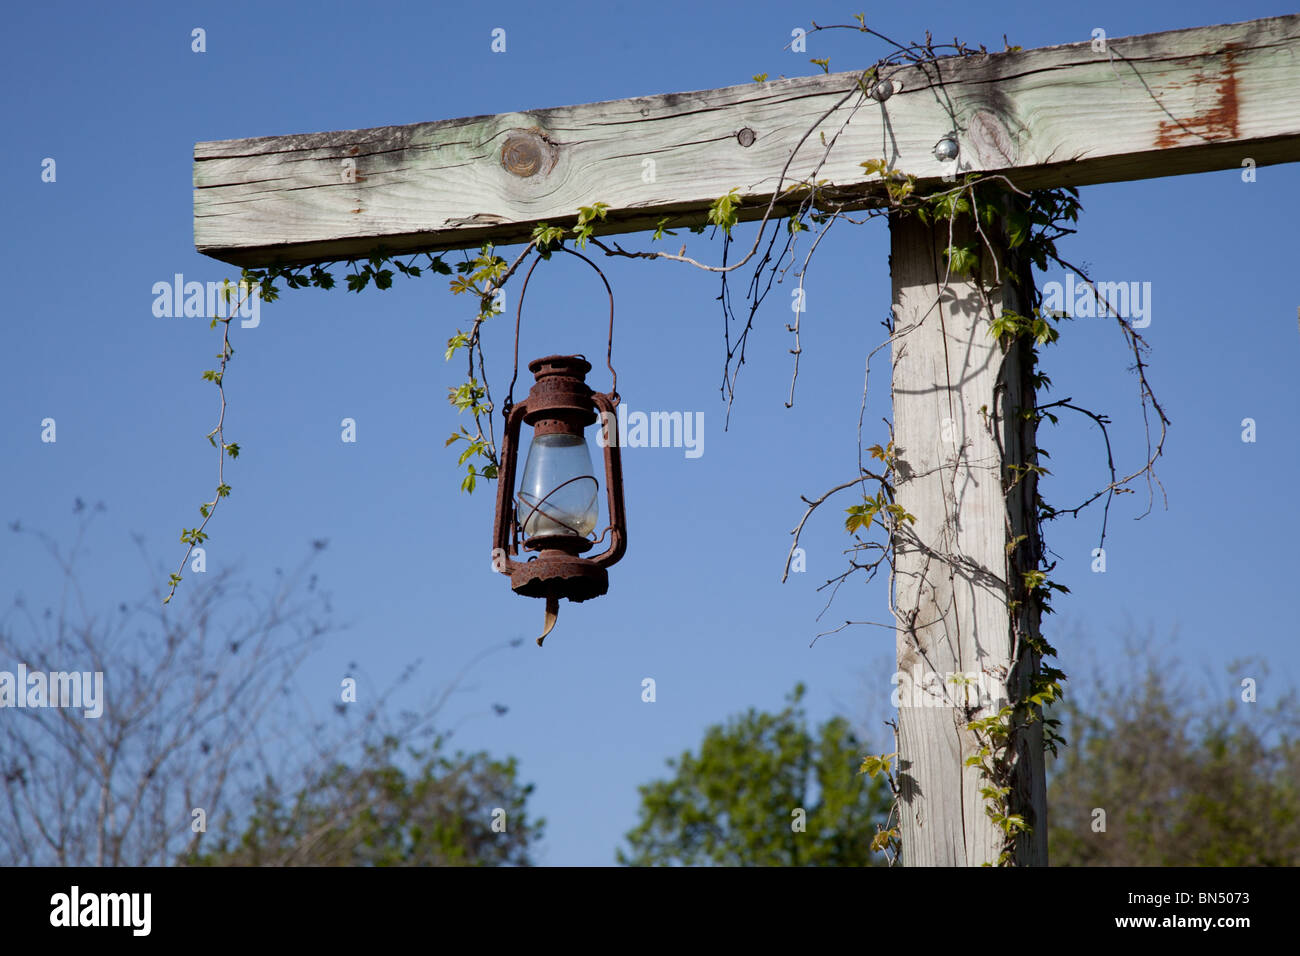 An old style oil lamp hangs from a vine covered wooden post on a Texas Ranch - Stock Image